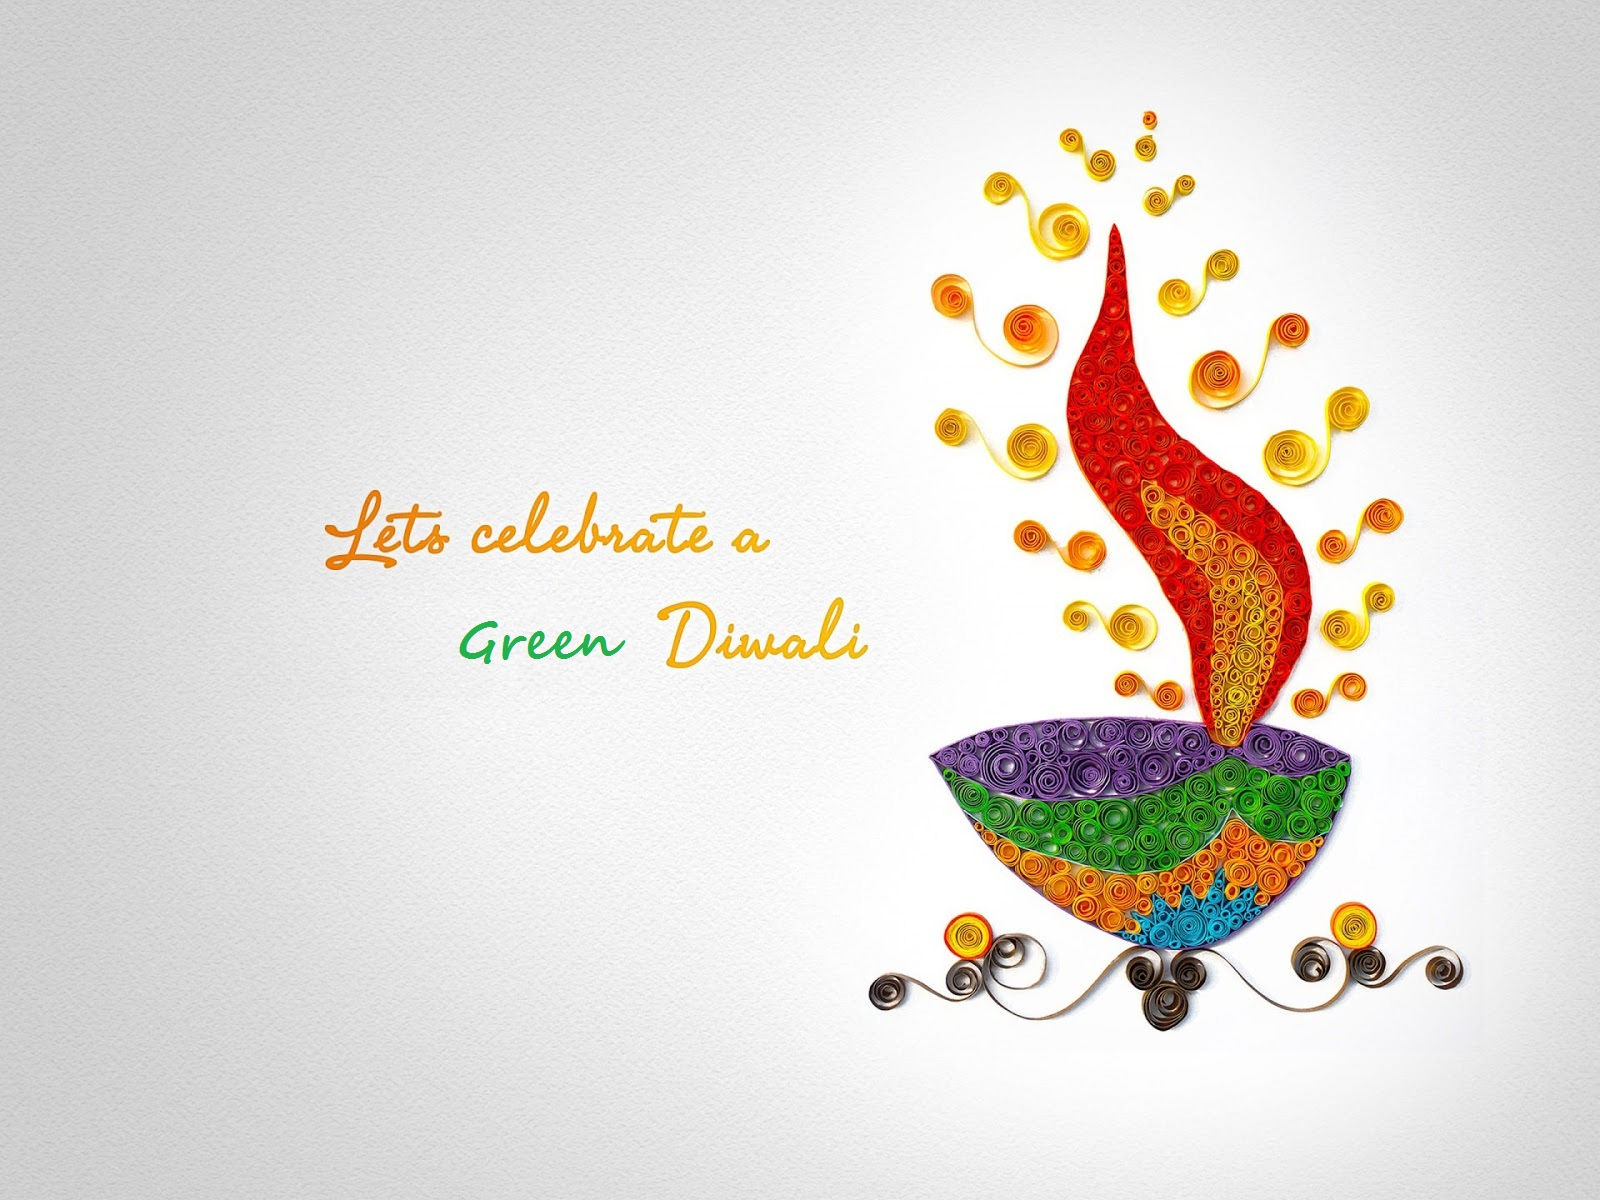 Eco Friendly Diwali Images for Whatsapp